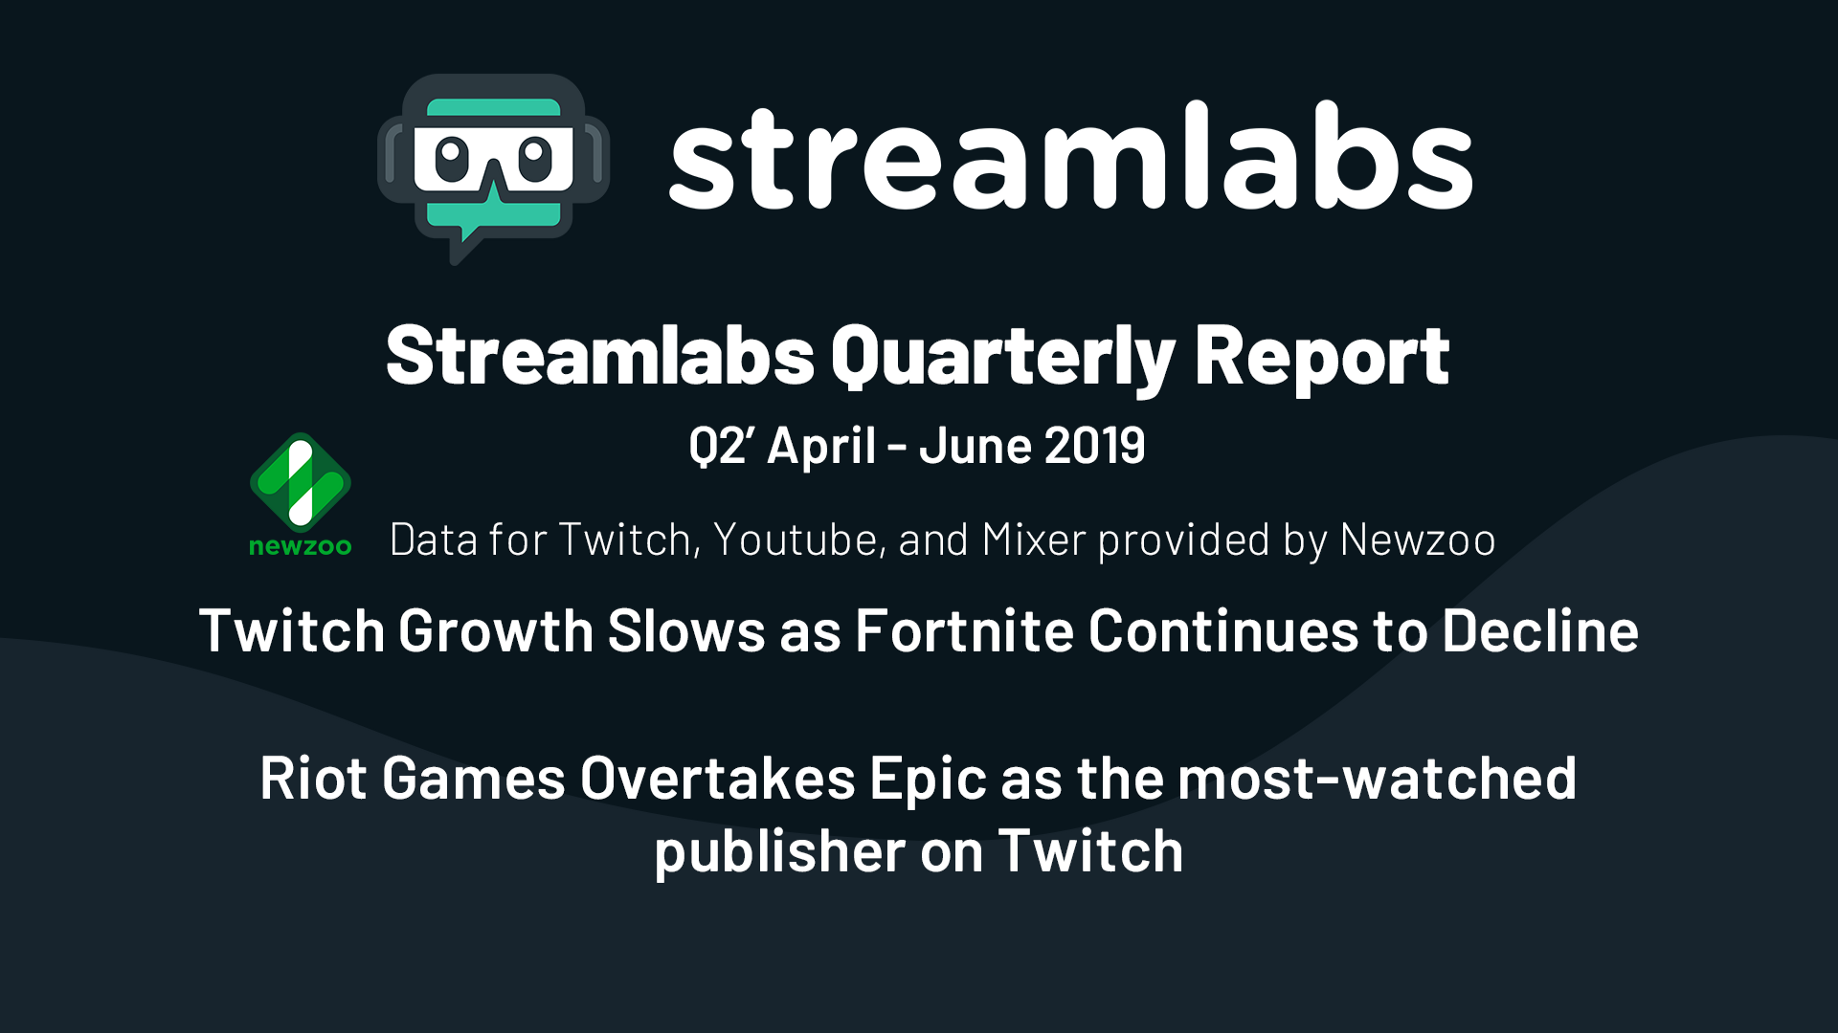 Streamlabs Q2 2019 Live Streaming Industry Report - Streamlabs Blog